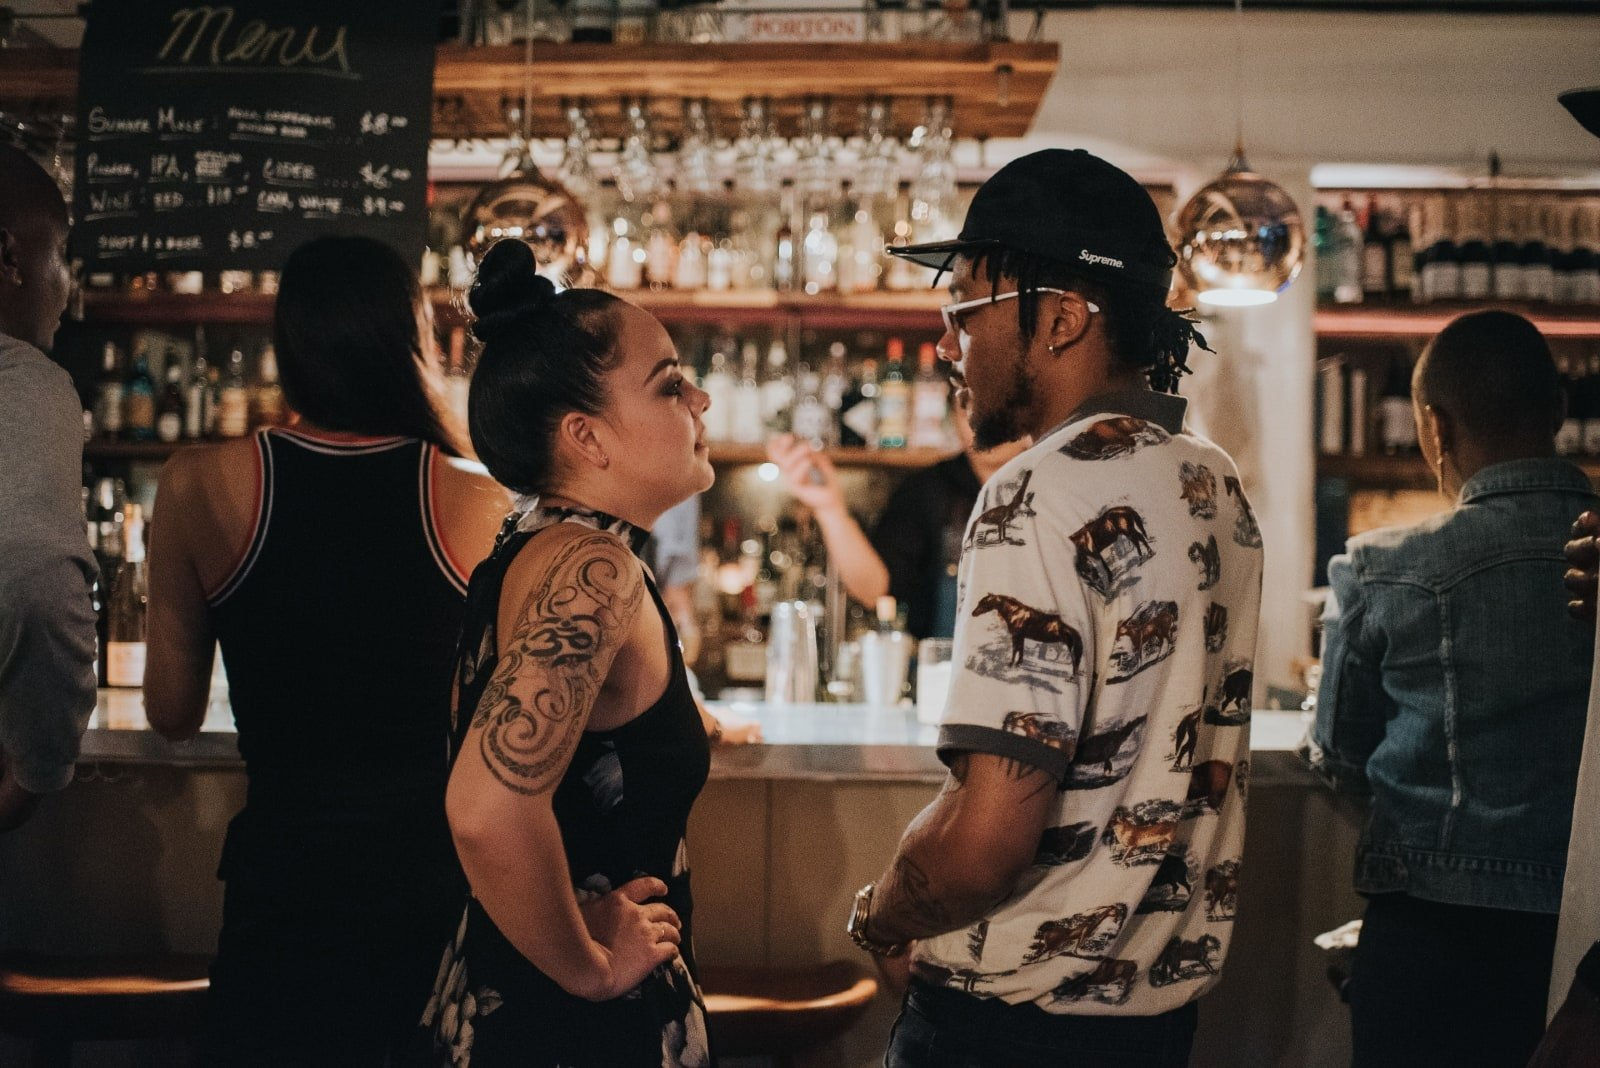 man and woman making eye contact while standing in bar